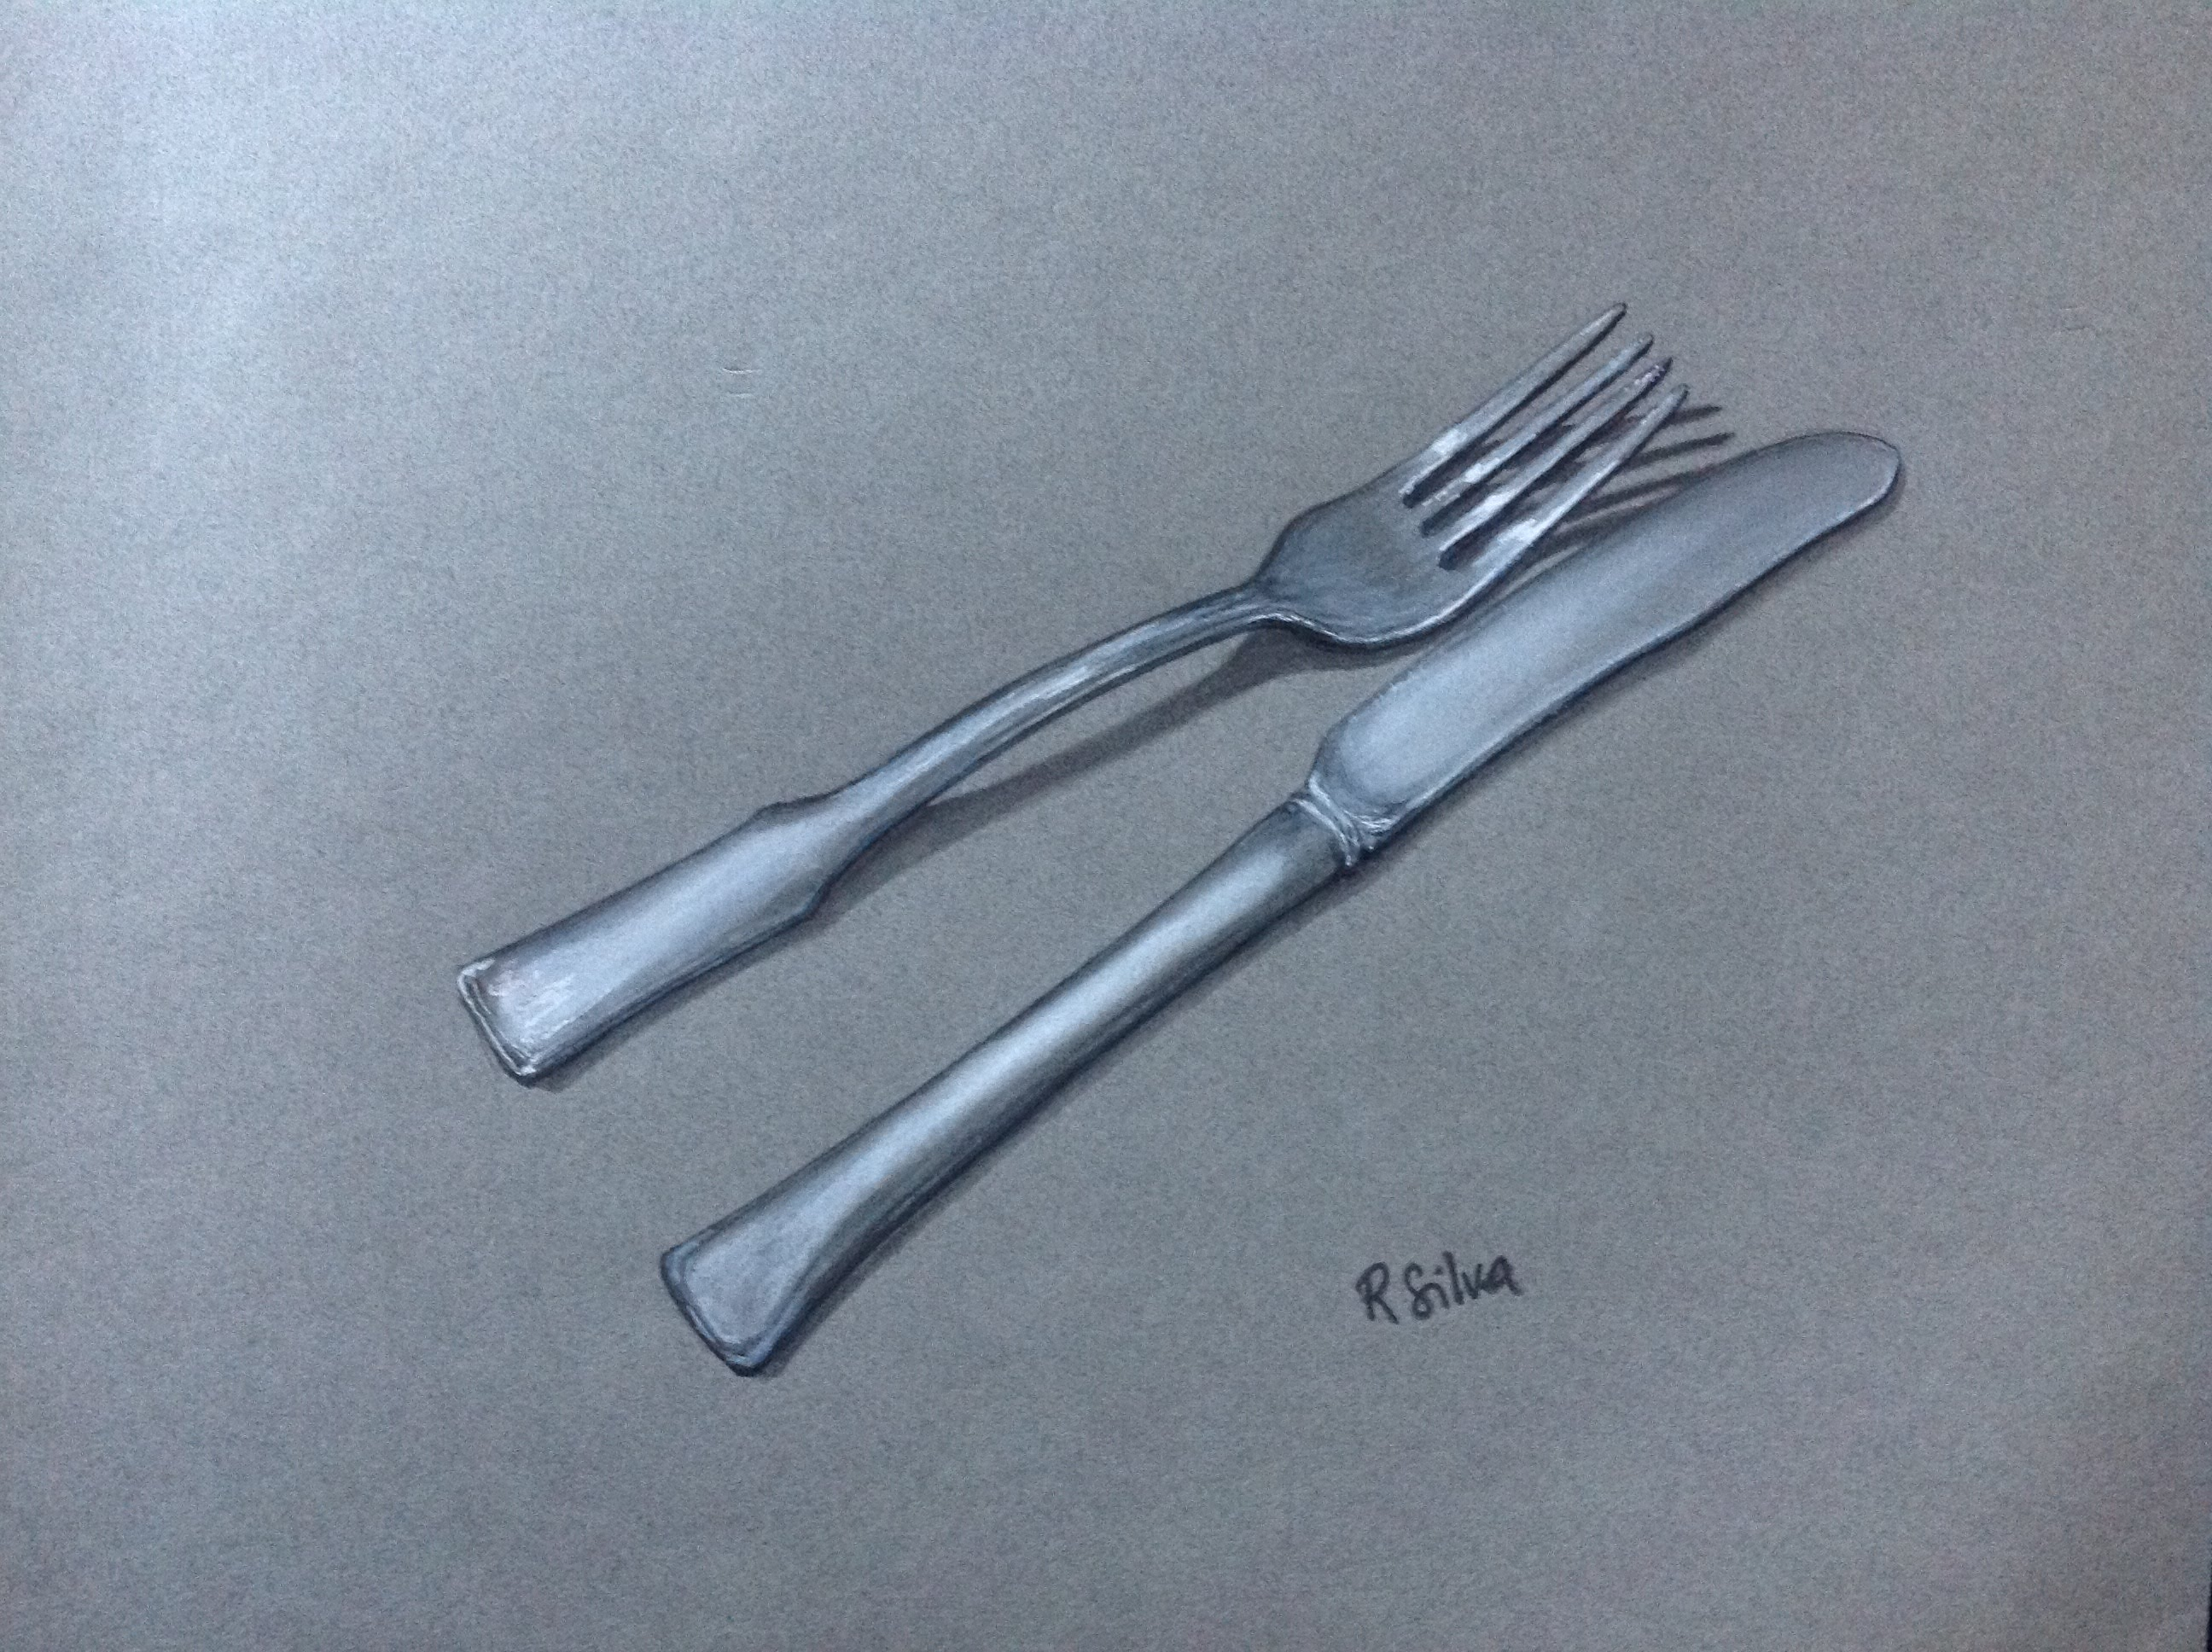 Drawn spoon cutlery Time Knife and How to